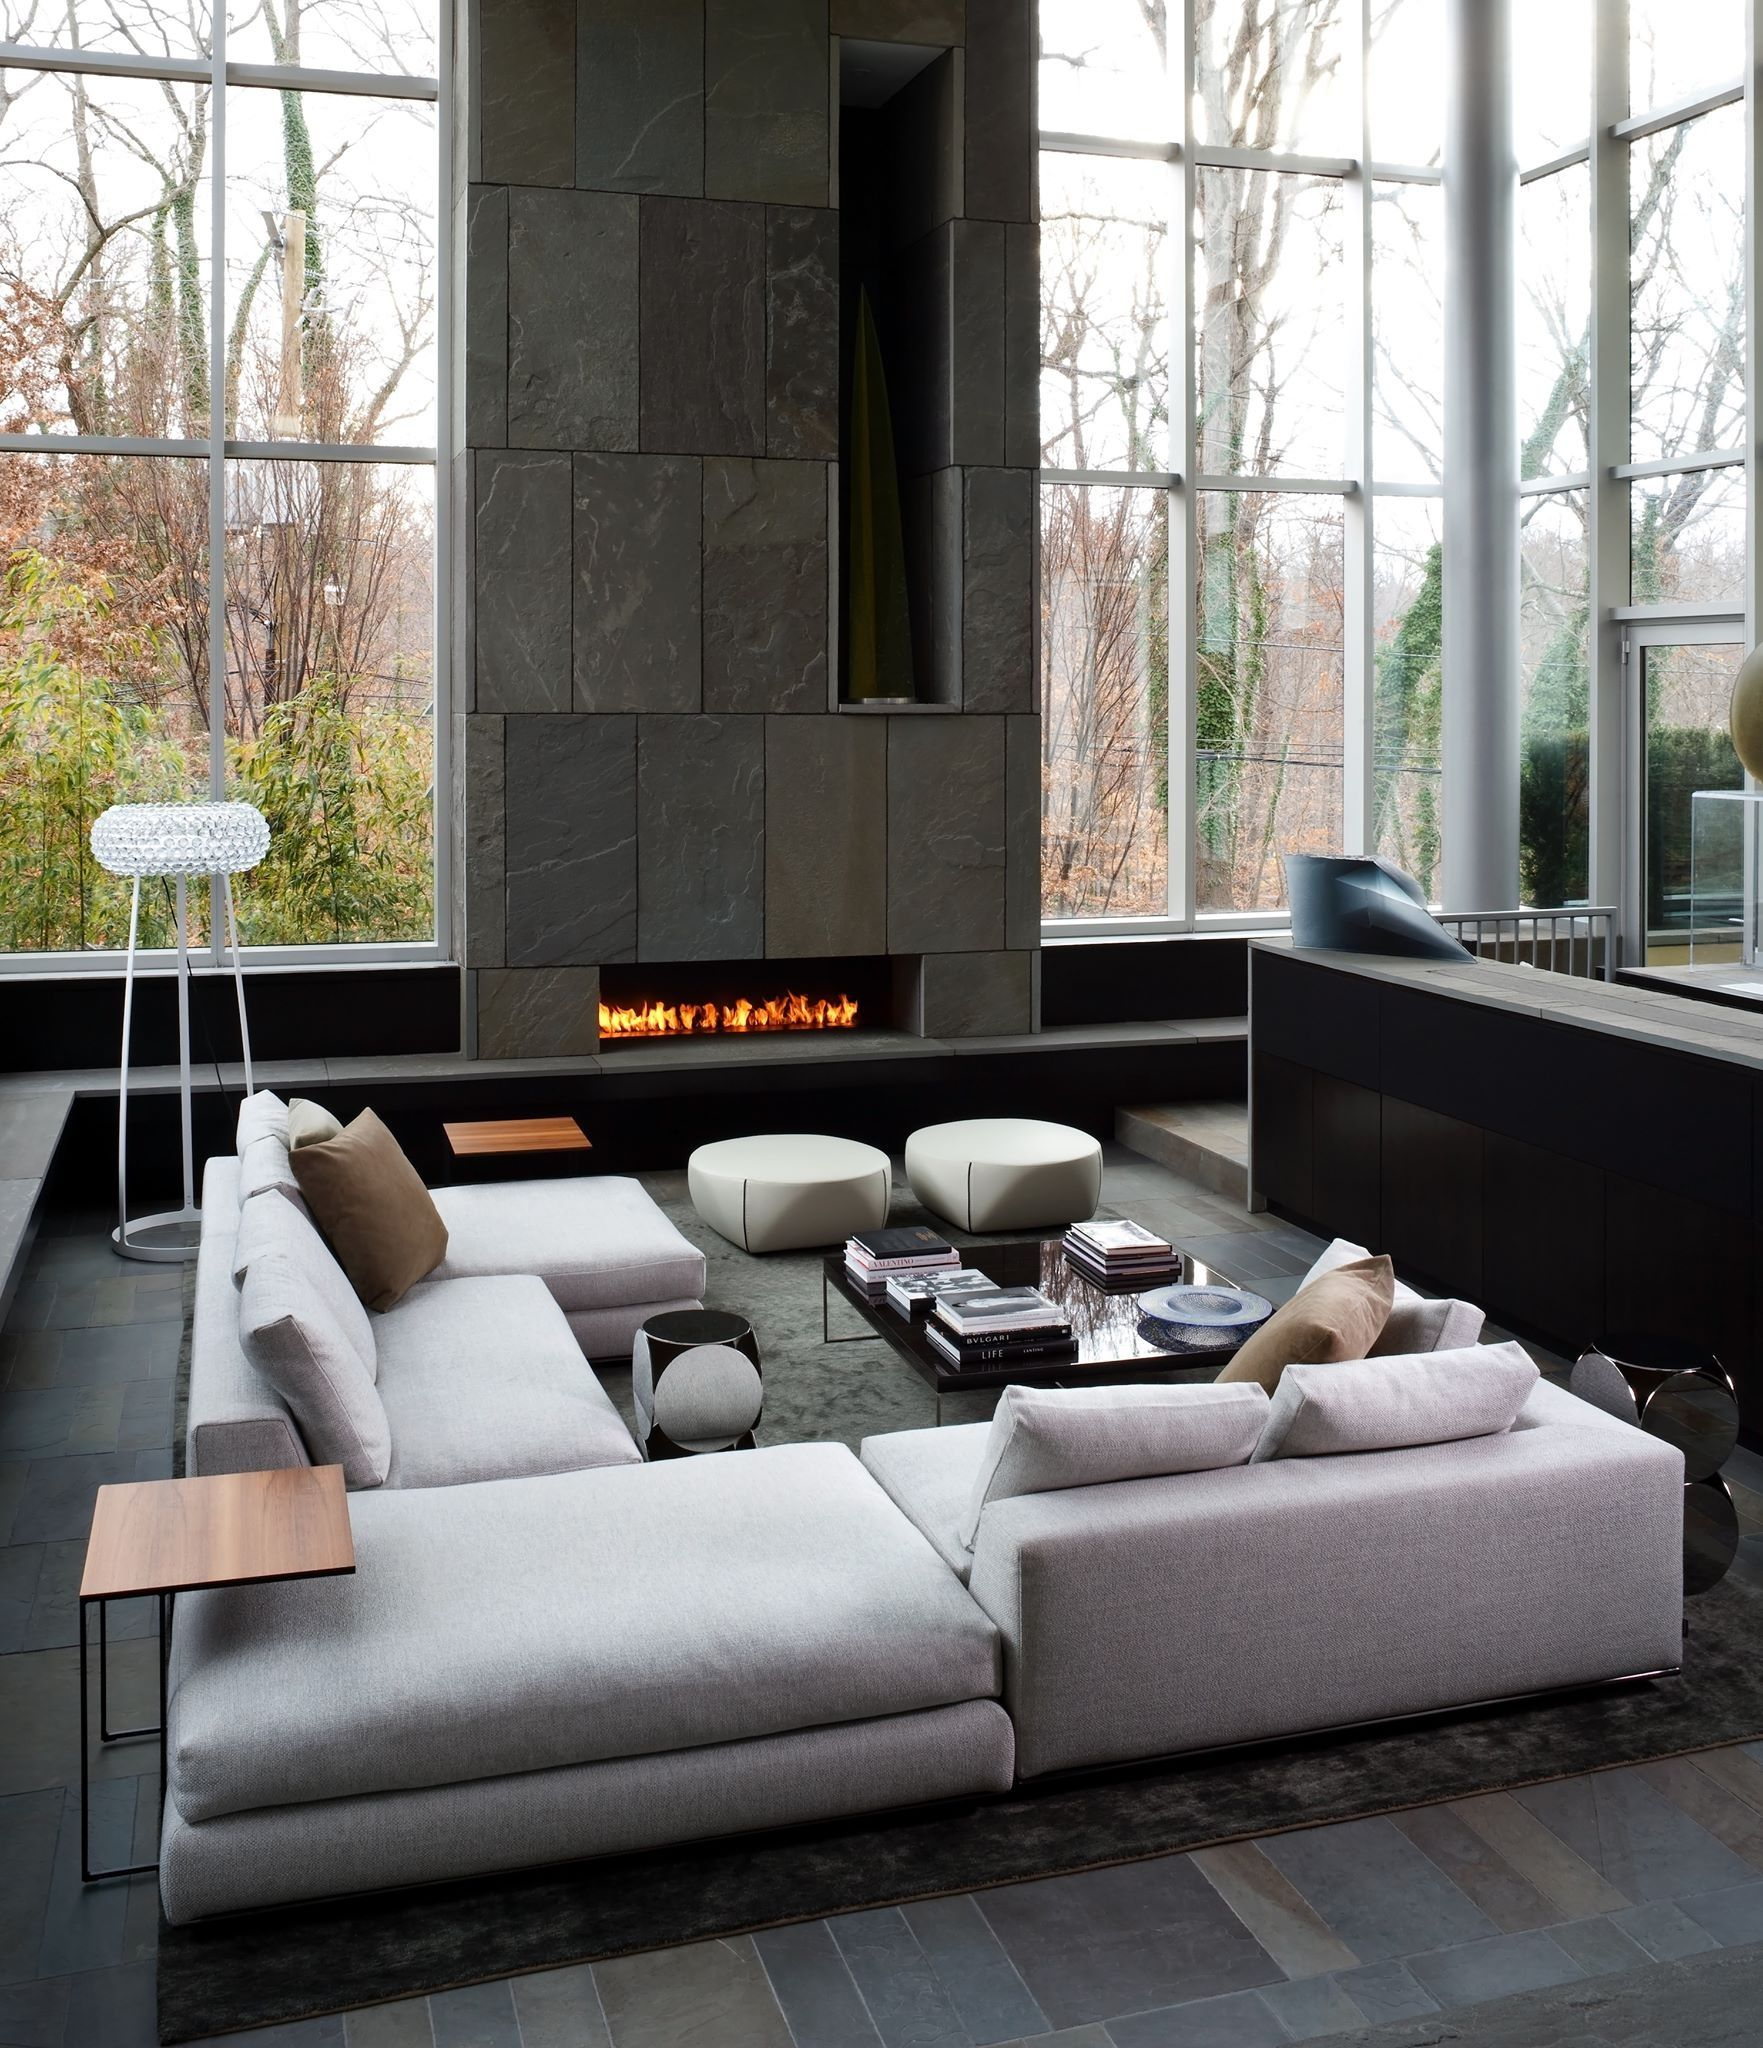 Gas Fire Place Monochrome Grey Interior Living Rooms Pinterest